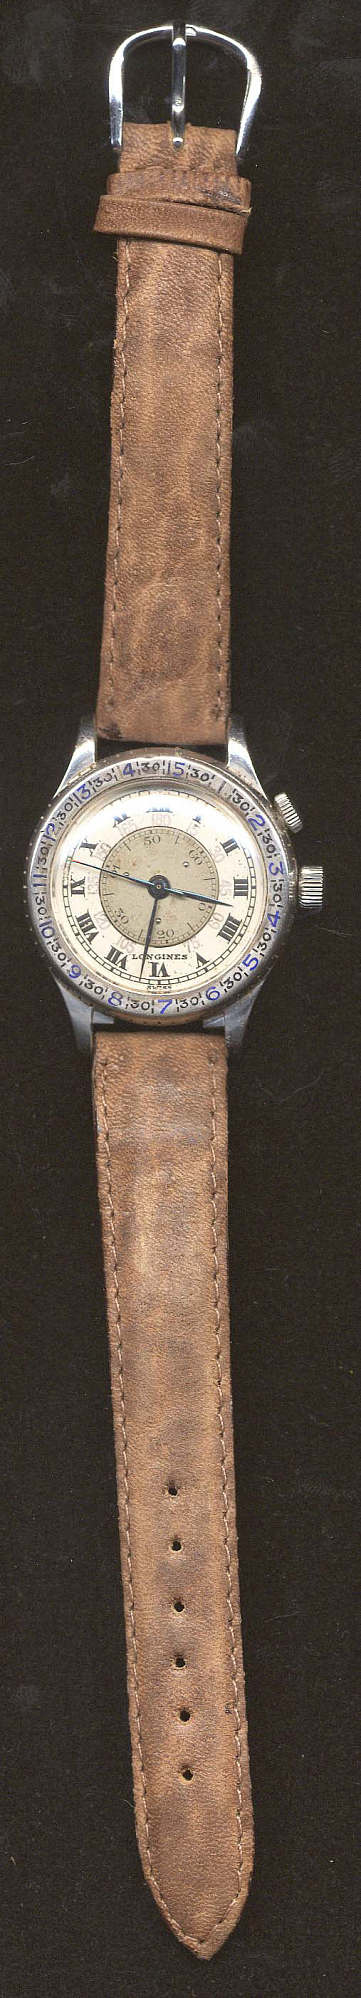 Wristwatch, Hour Angle, Lindbergh, King Collection